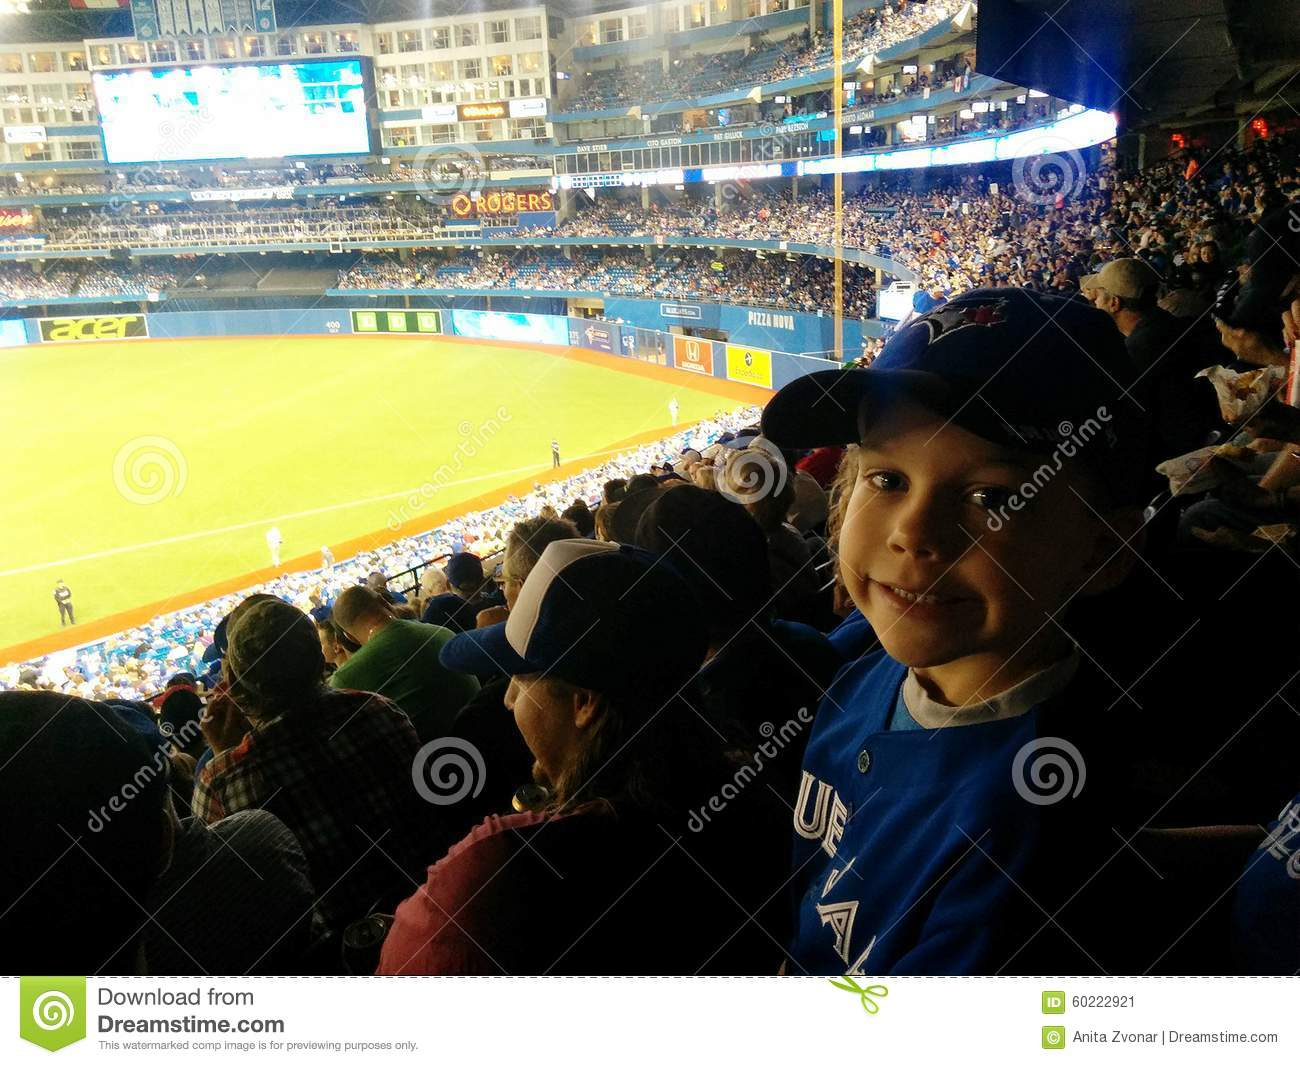 aa0c8fe8efa3 Blue jays baseball at the rogers centre in toronto. Watching a jays game.  Young blue jays game. boy watching a blue jays game. kids at sporting  events. blue ...